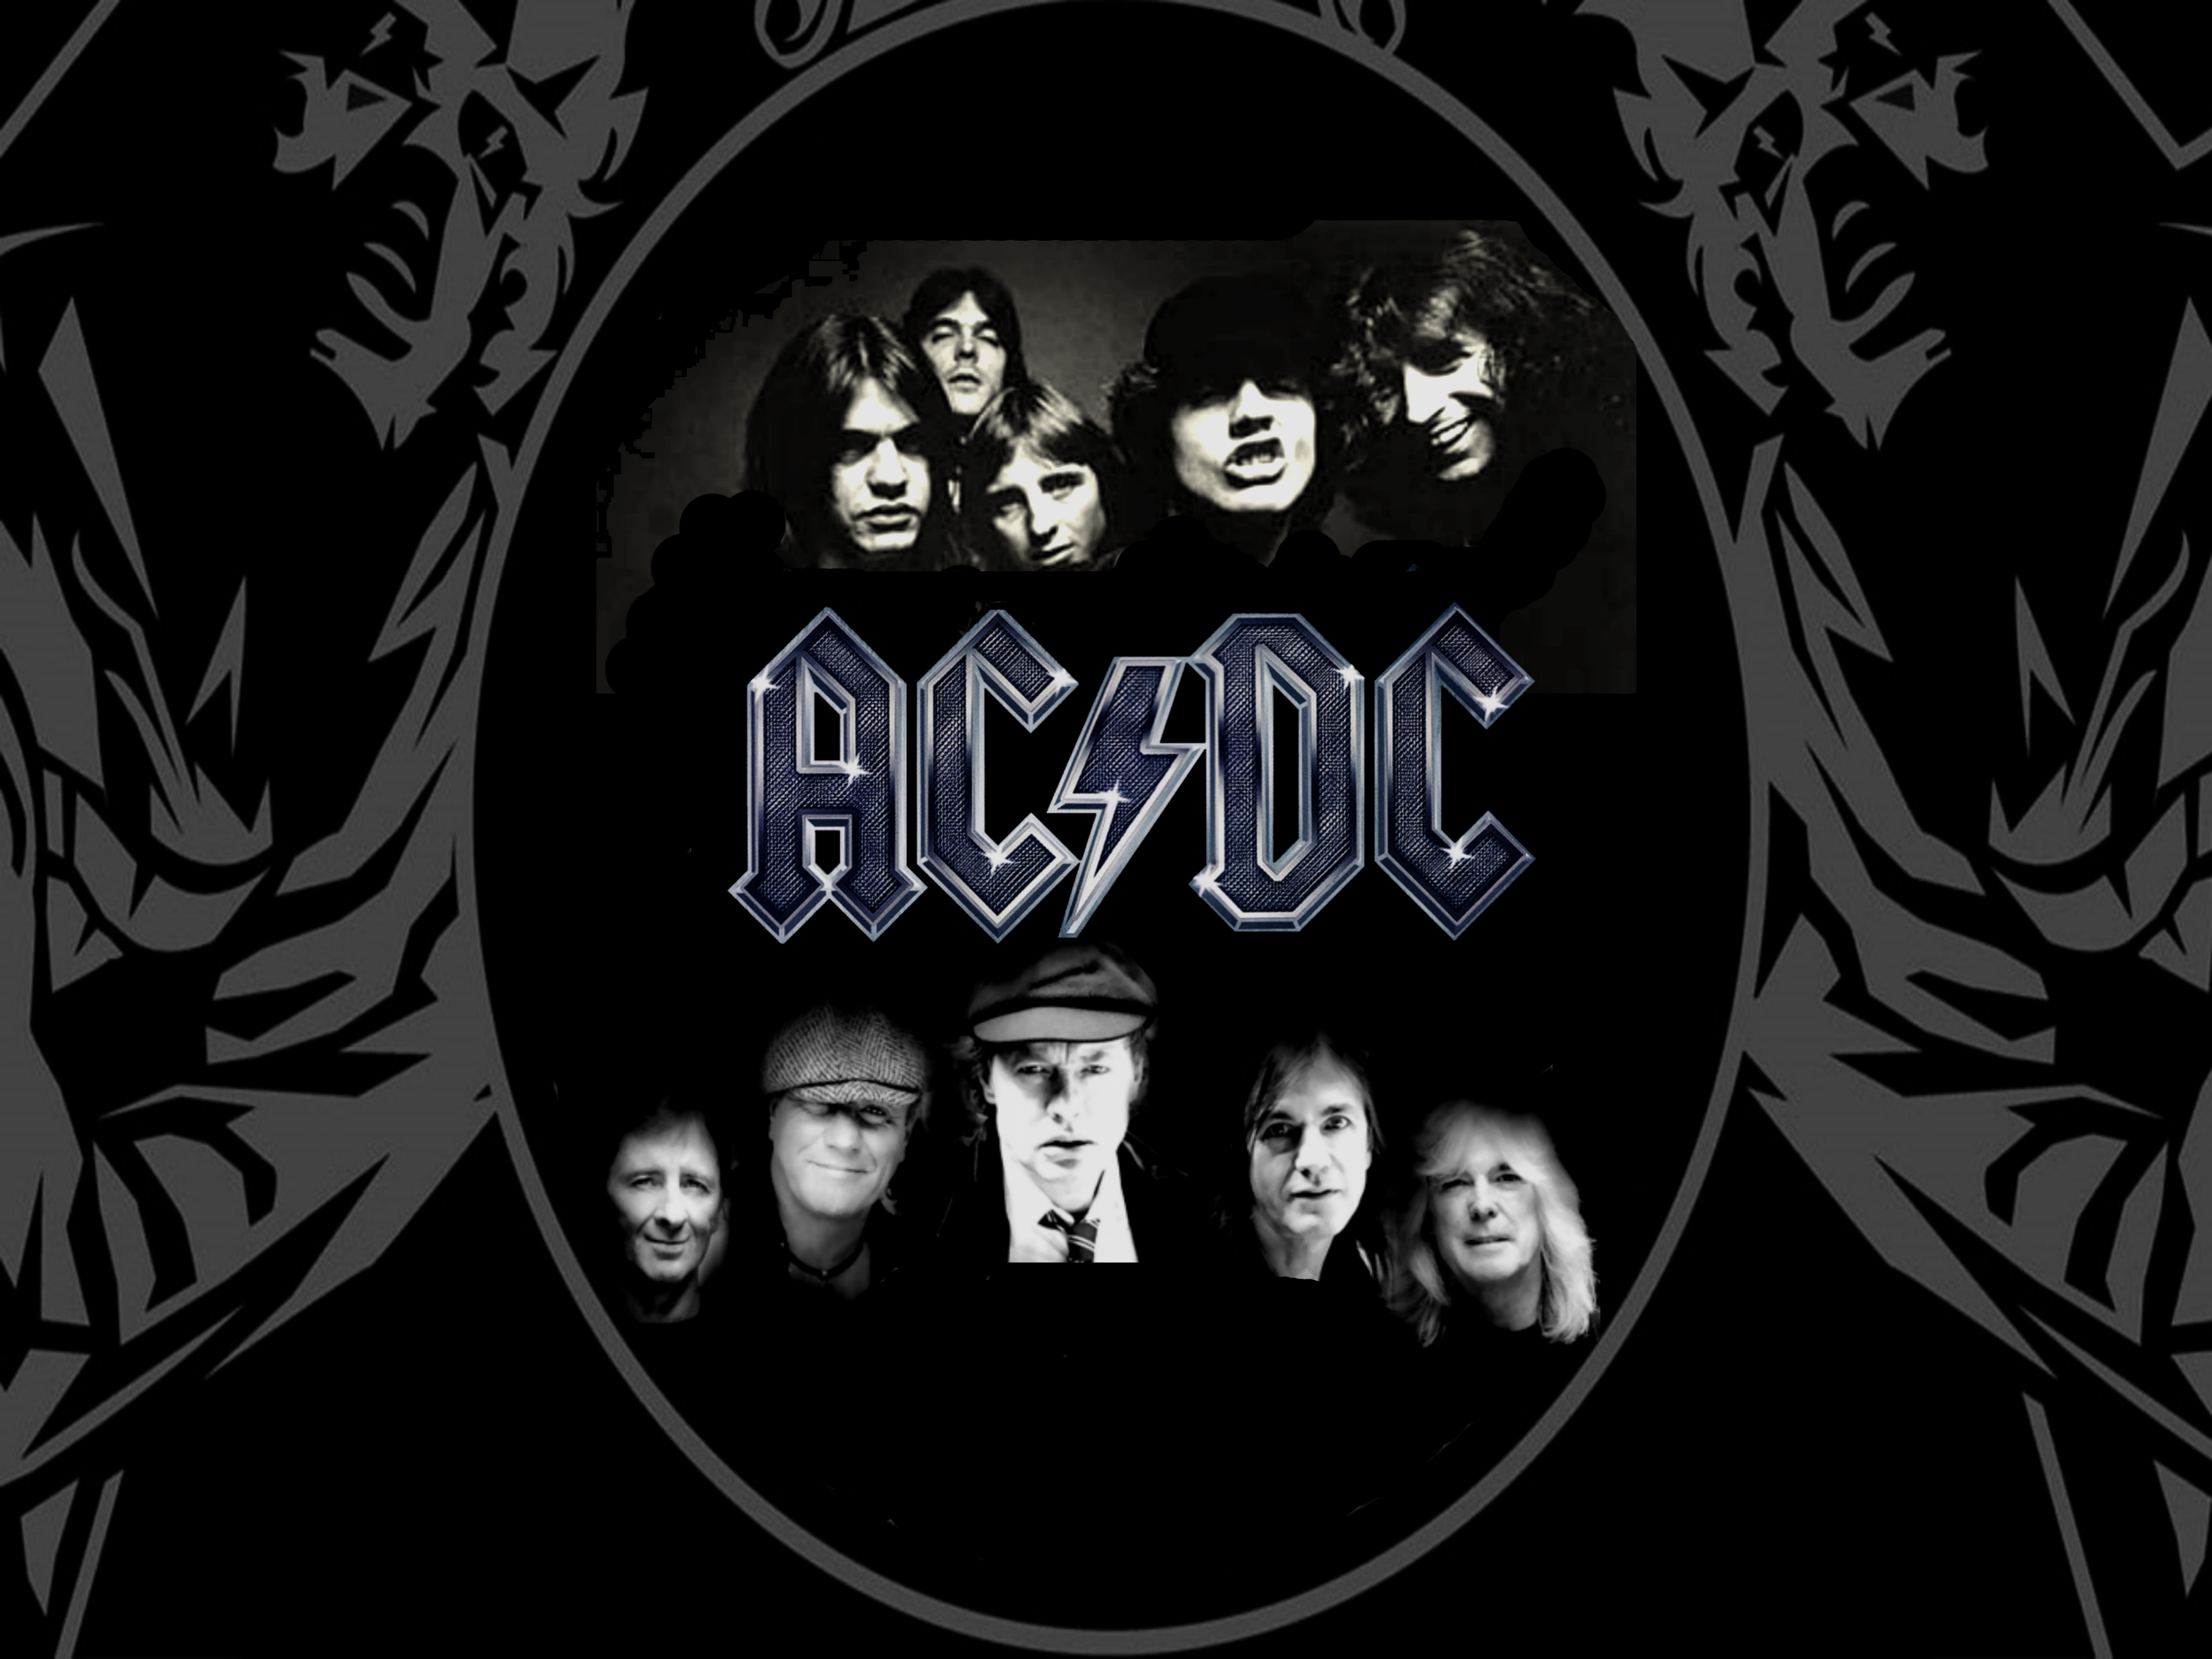 Ac dc wallpapers free wallpapersafari - Ac dc wallpaper for android ...